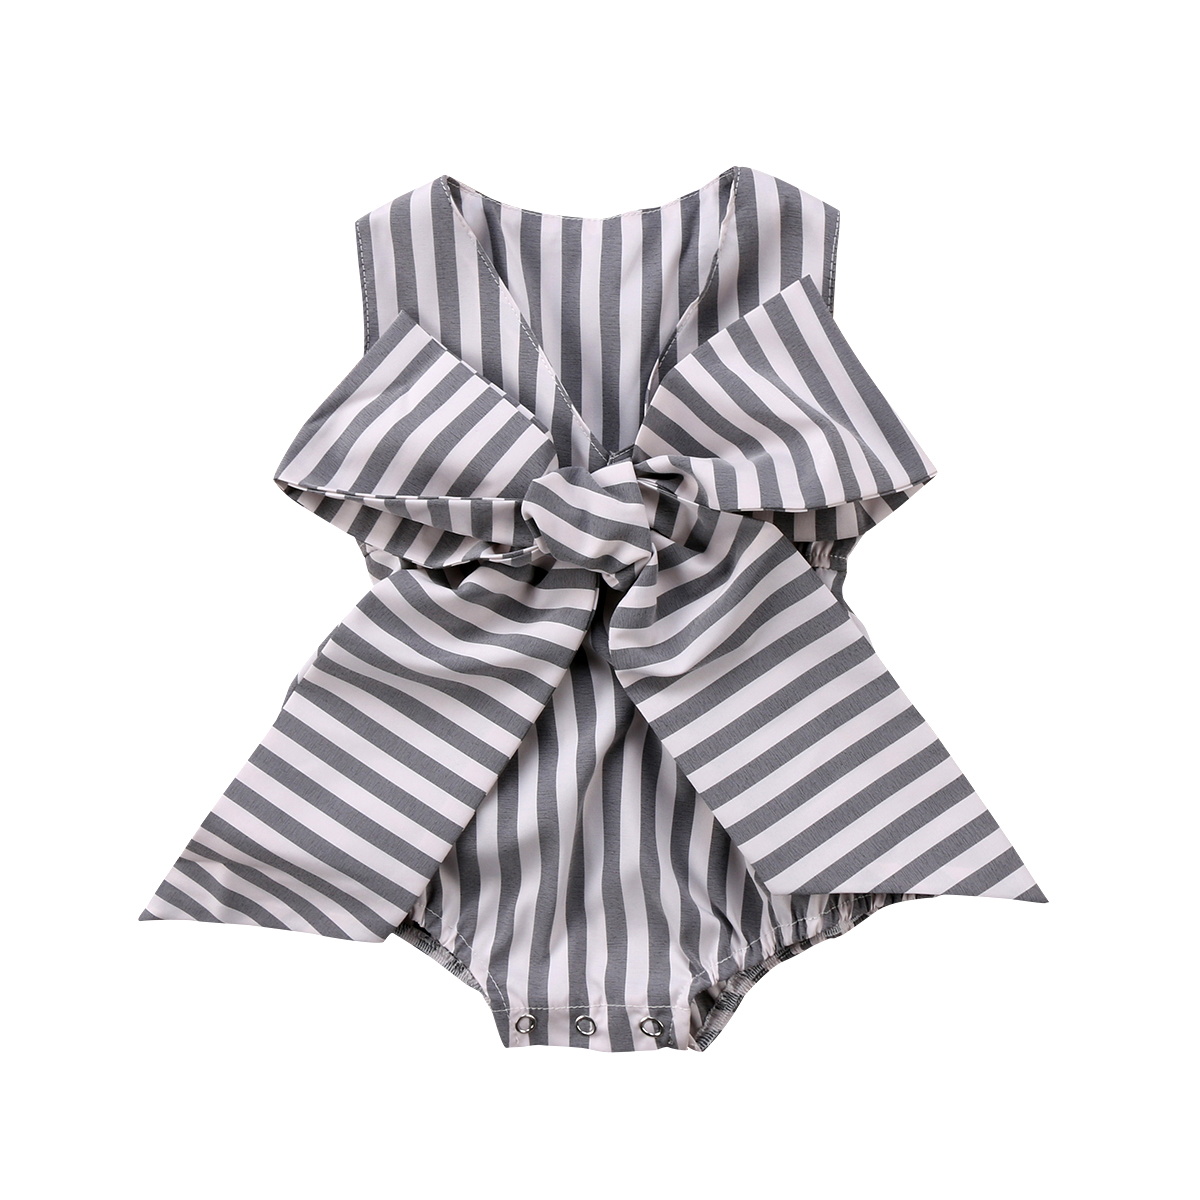 Striped Big Bowknot Gray Stylish Newborn Baby Girls Bow Sleeveless Romper Jumpsuit Clothes Outfits Summer